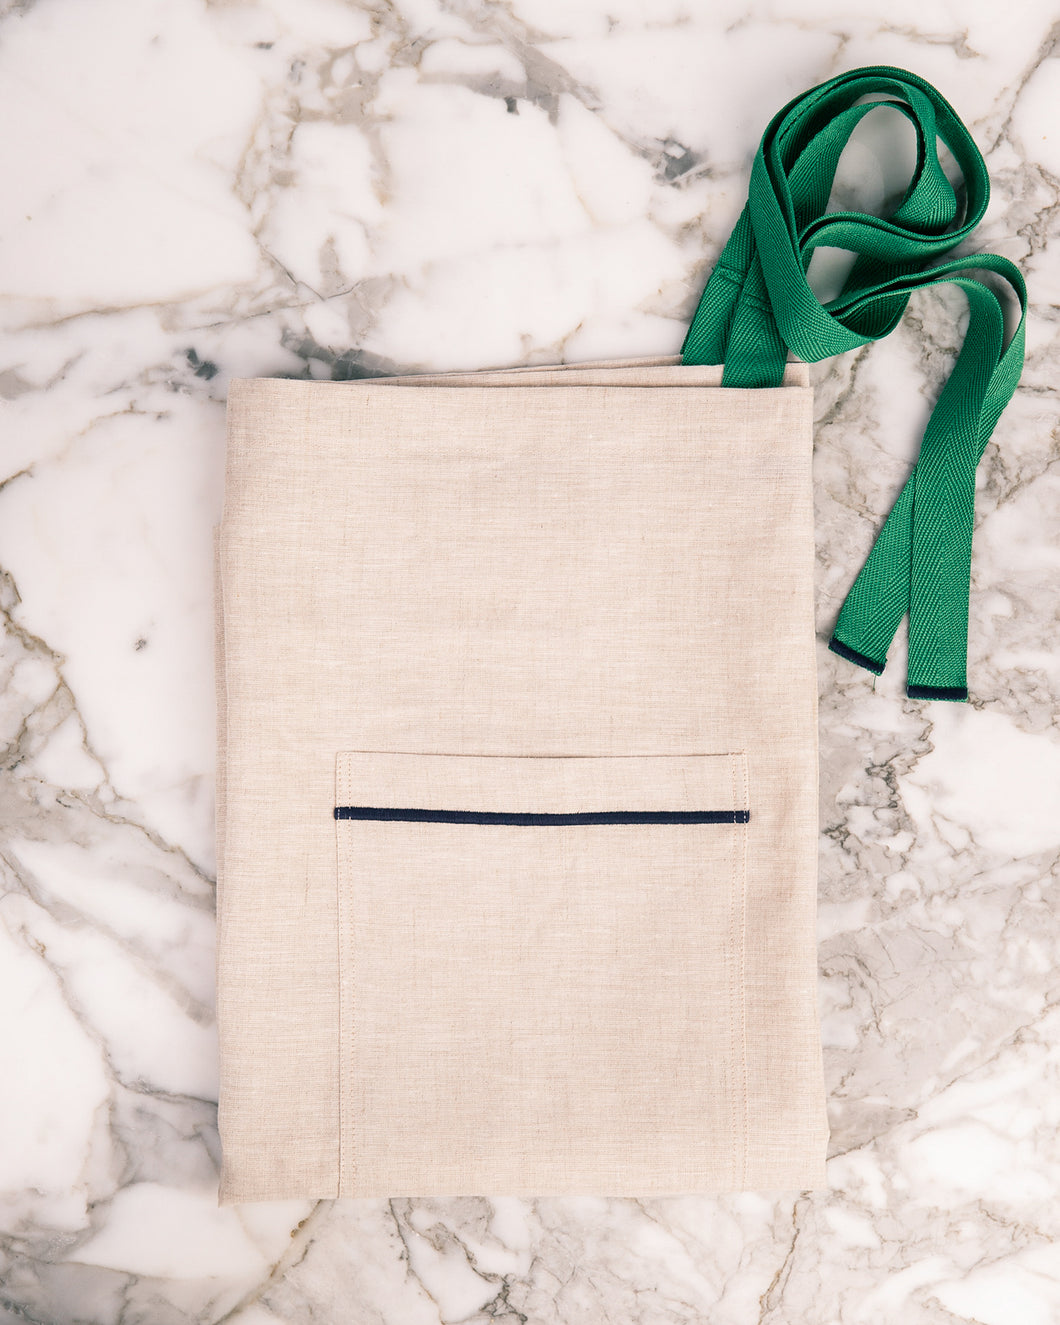 Premium beige linen half apron with navy blue pocket stitching and green adjustable ties.